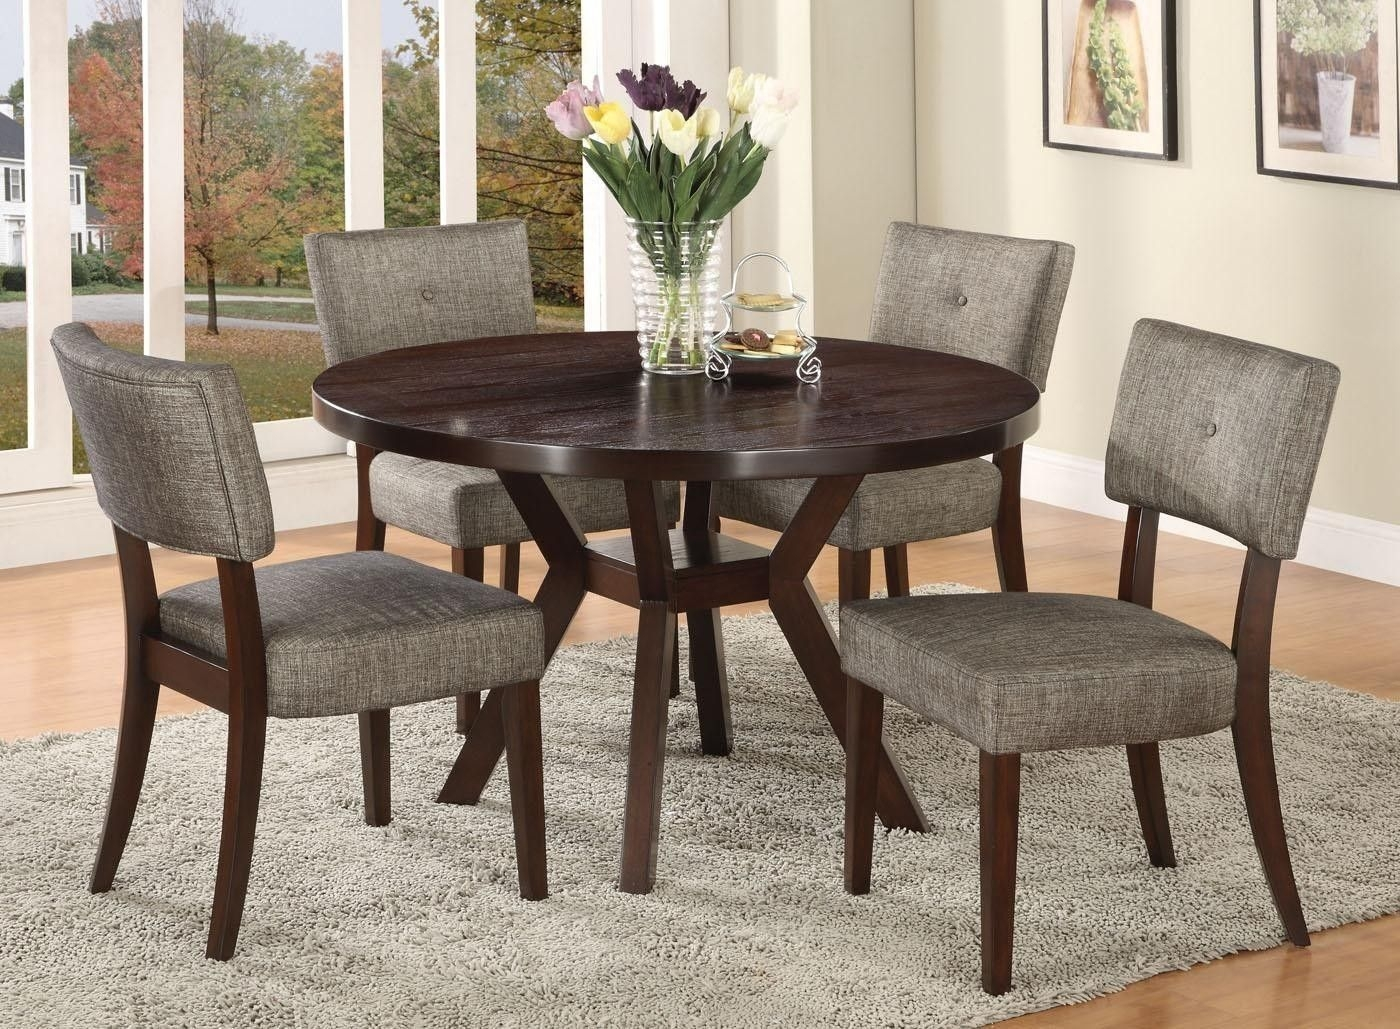 Infini Furnishings 5 Piece Dining Set  Reviews  Wayfair  Round Dining Room Sets Kitchen